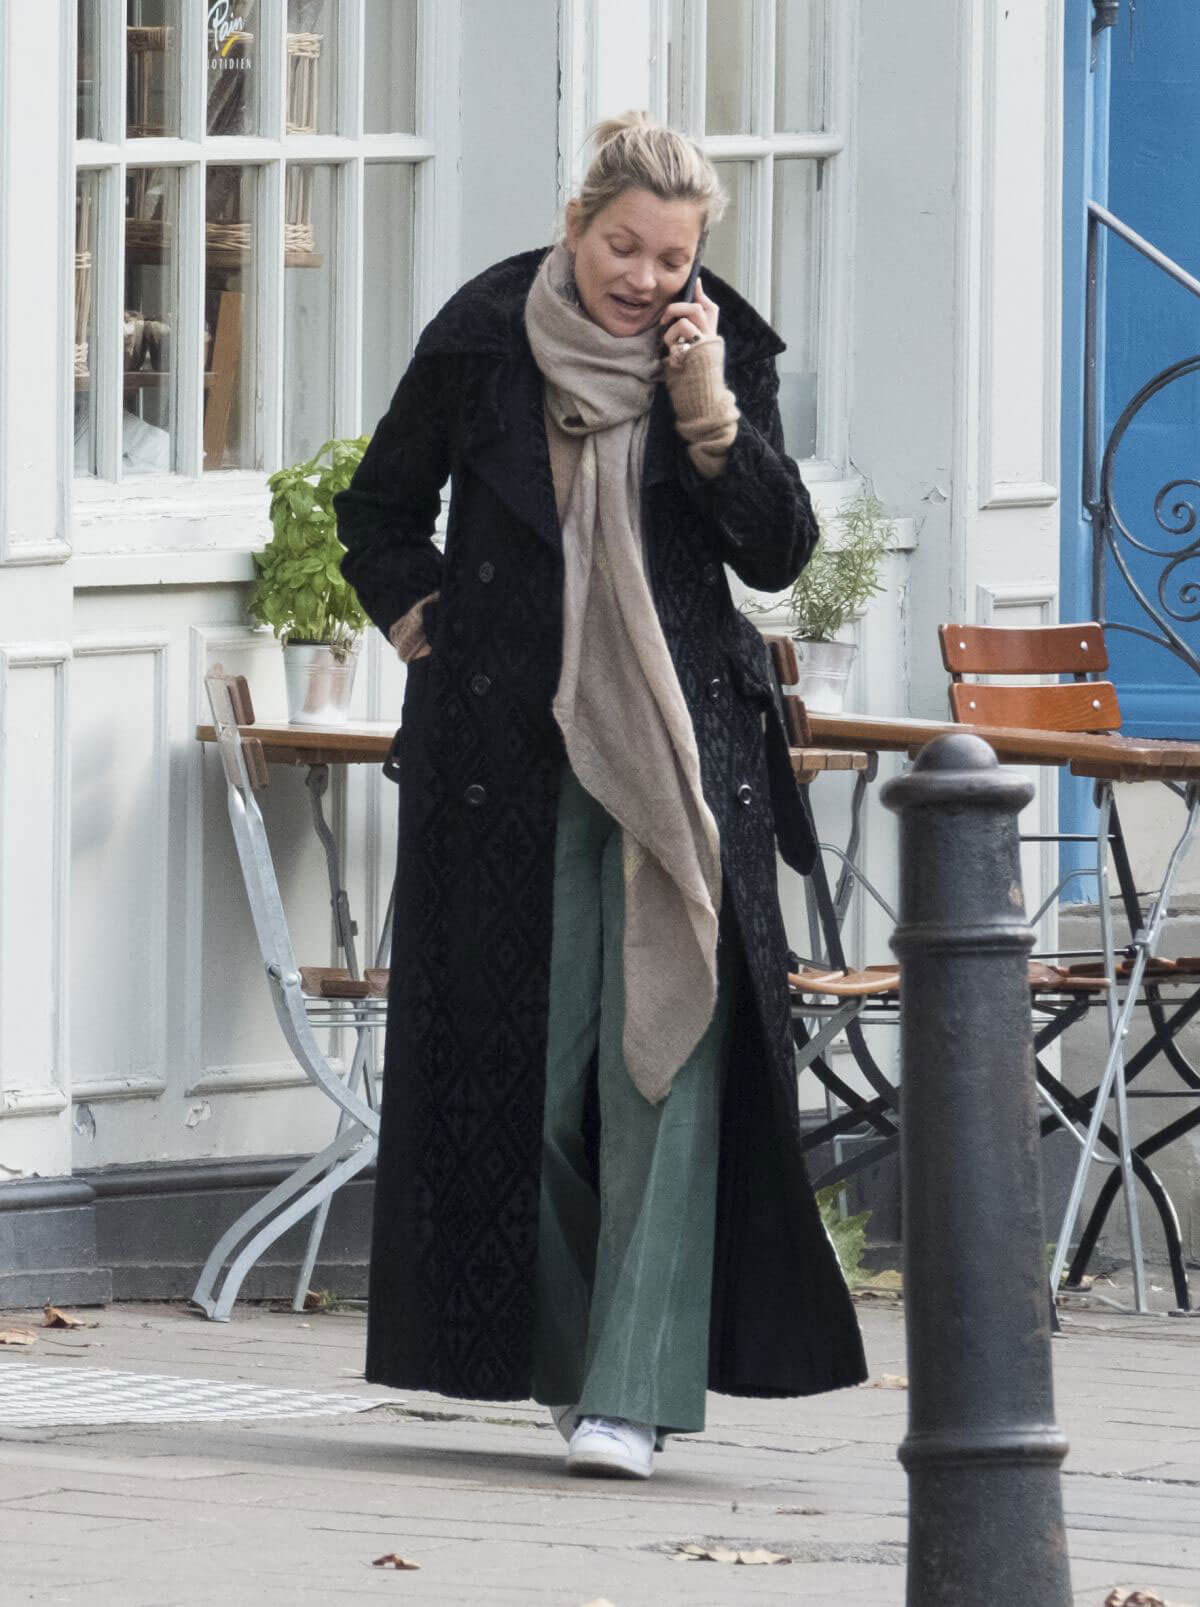 Model Kate Moss wears Winter Coat & Light Green Pants Out in London